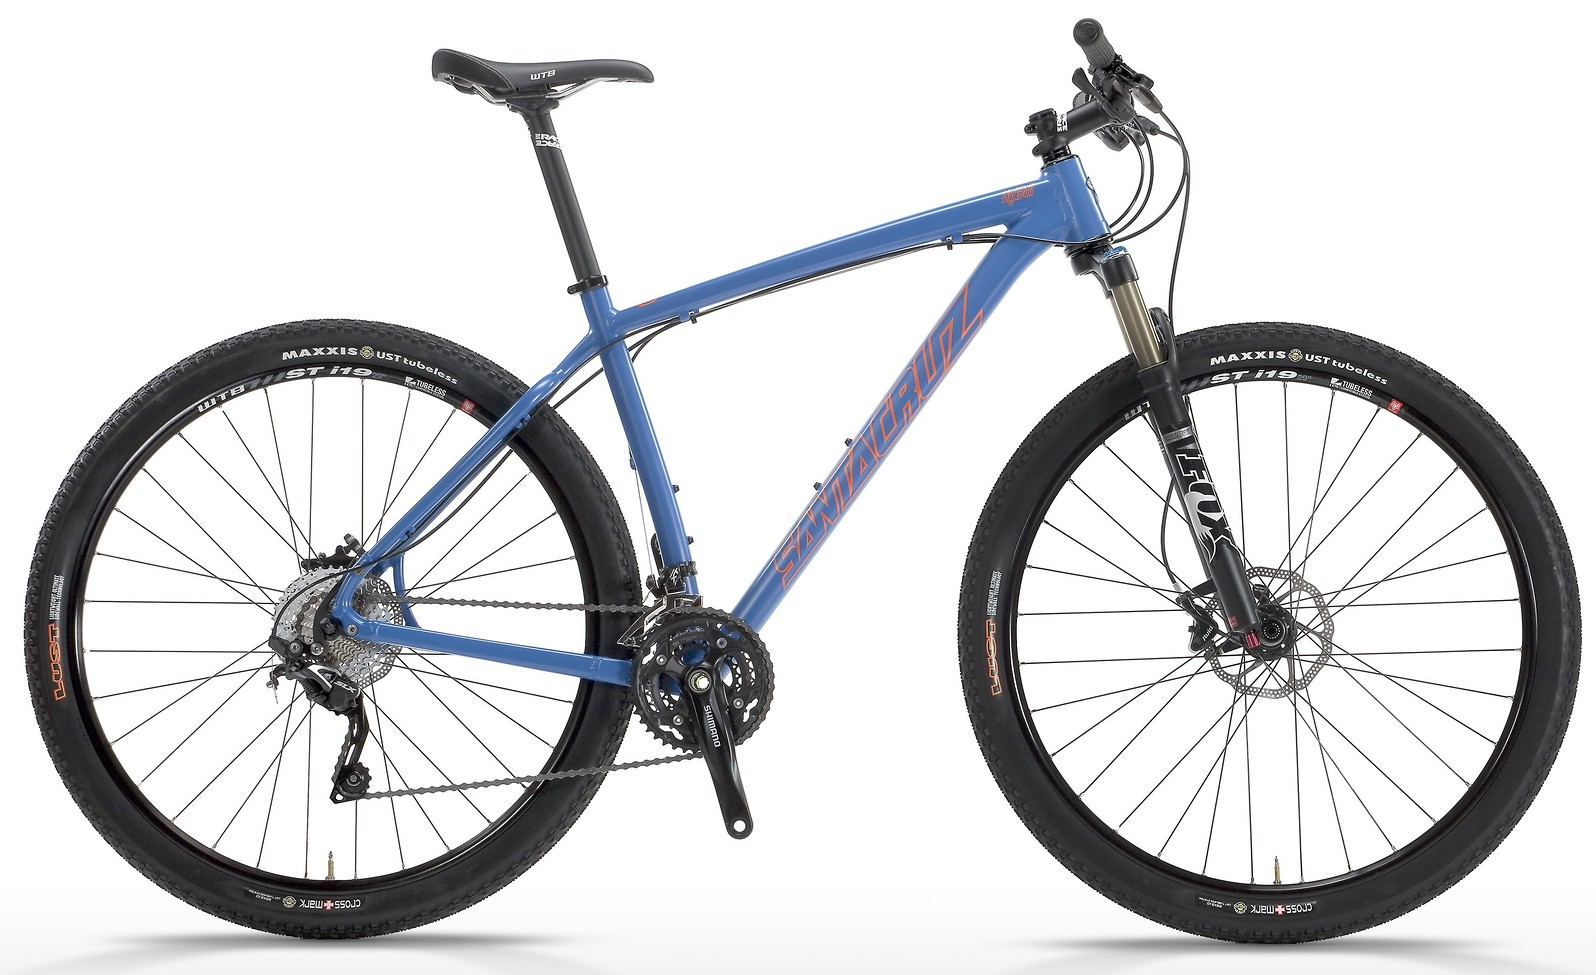 2014 Santa Cruz Highball D XC 29 Bike 2013 HIGHBALLcatalogflat